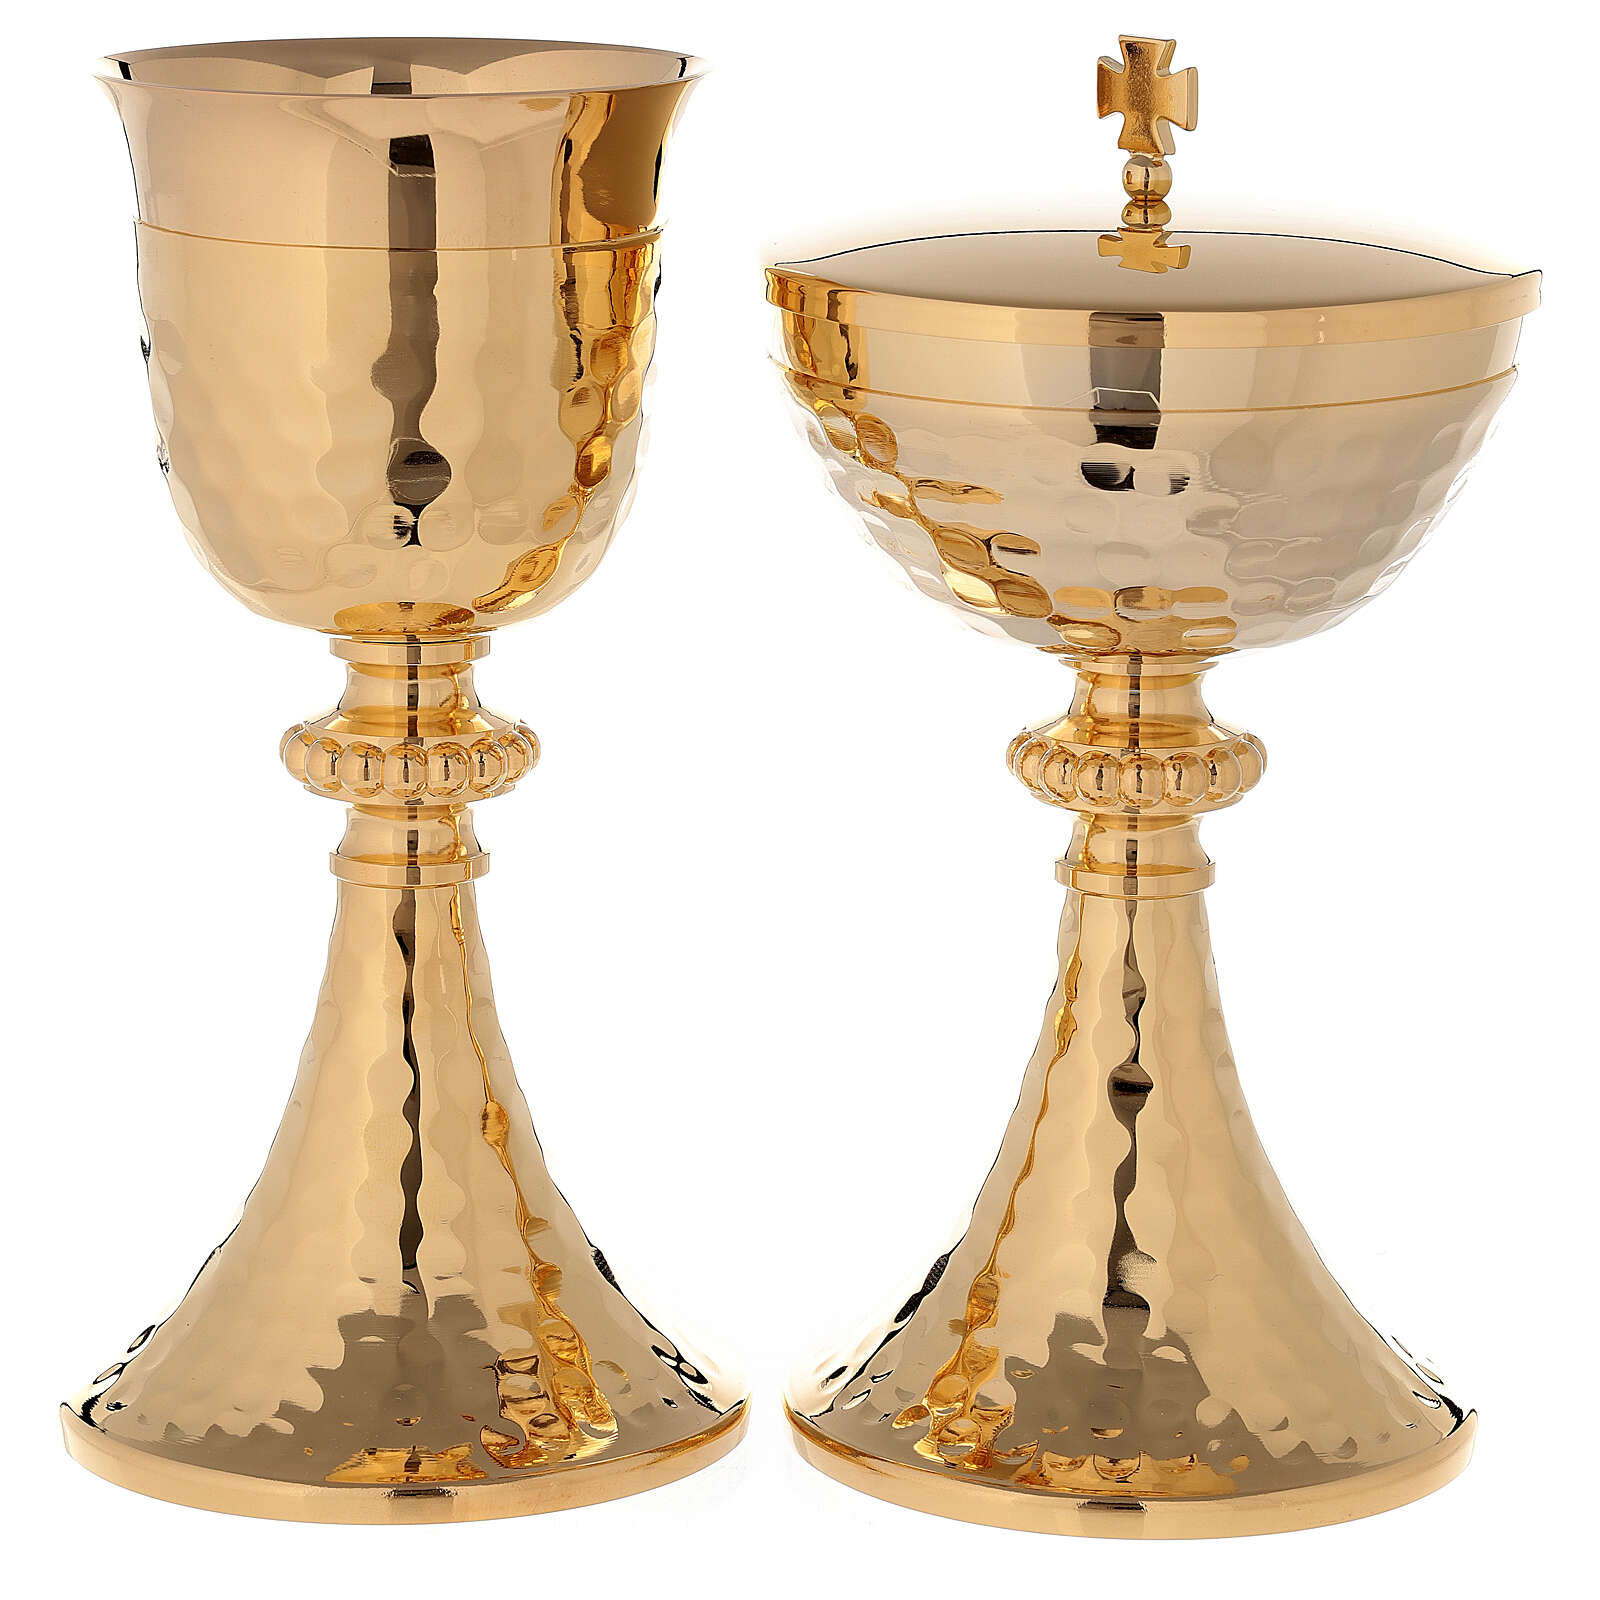 Chalice and ciborium in 24-karat gold plated brass with hammered base and cup 4